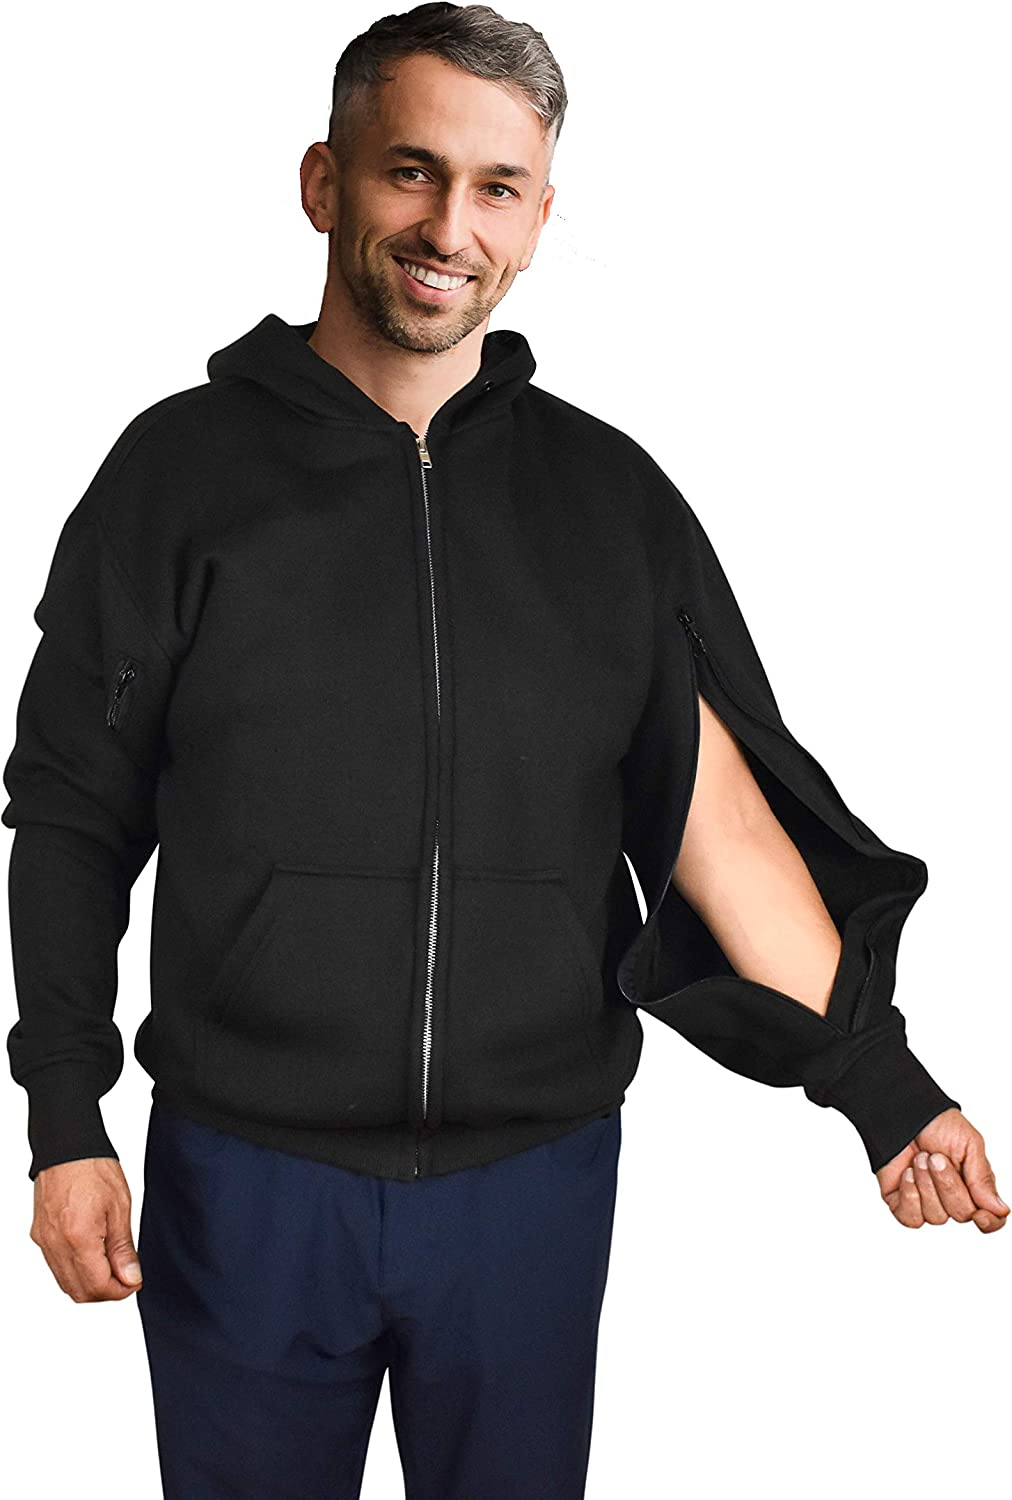 Inspired Comforts Dialysis Port Access Pullover Hoodie with Two Way Arm Zips